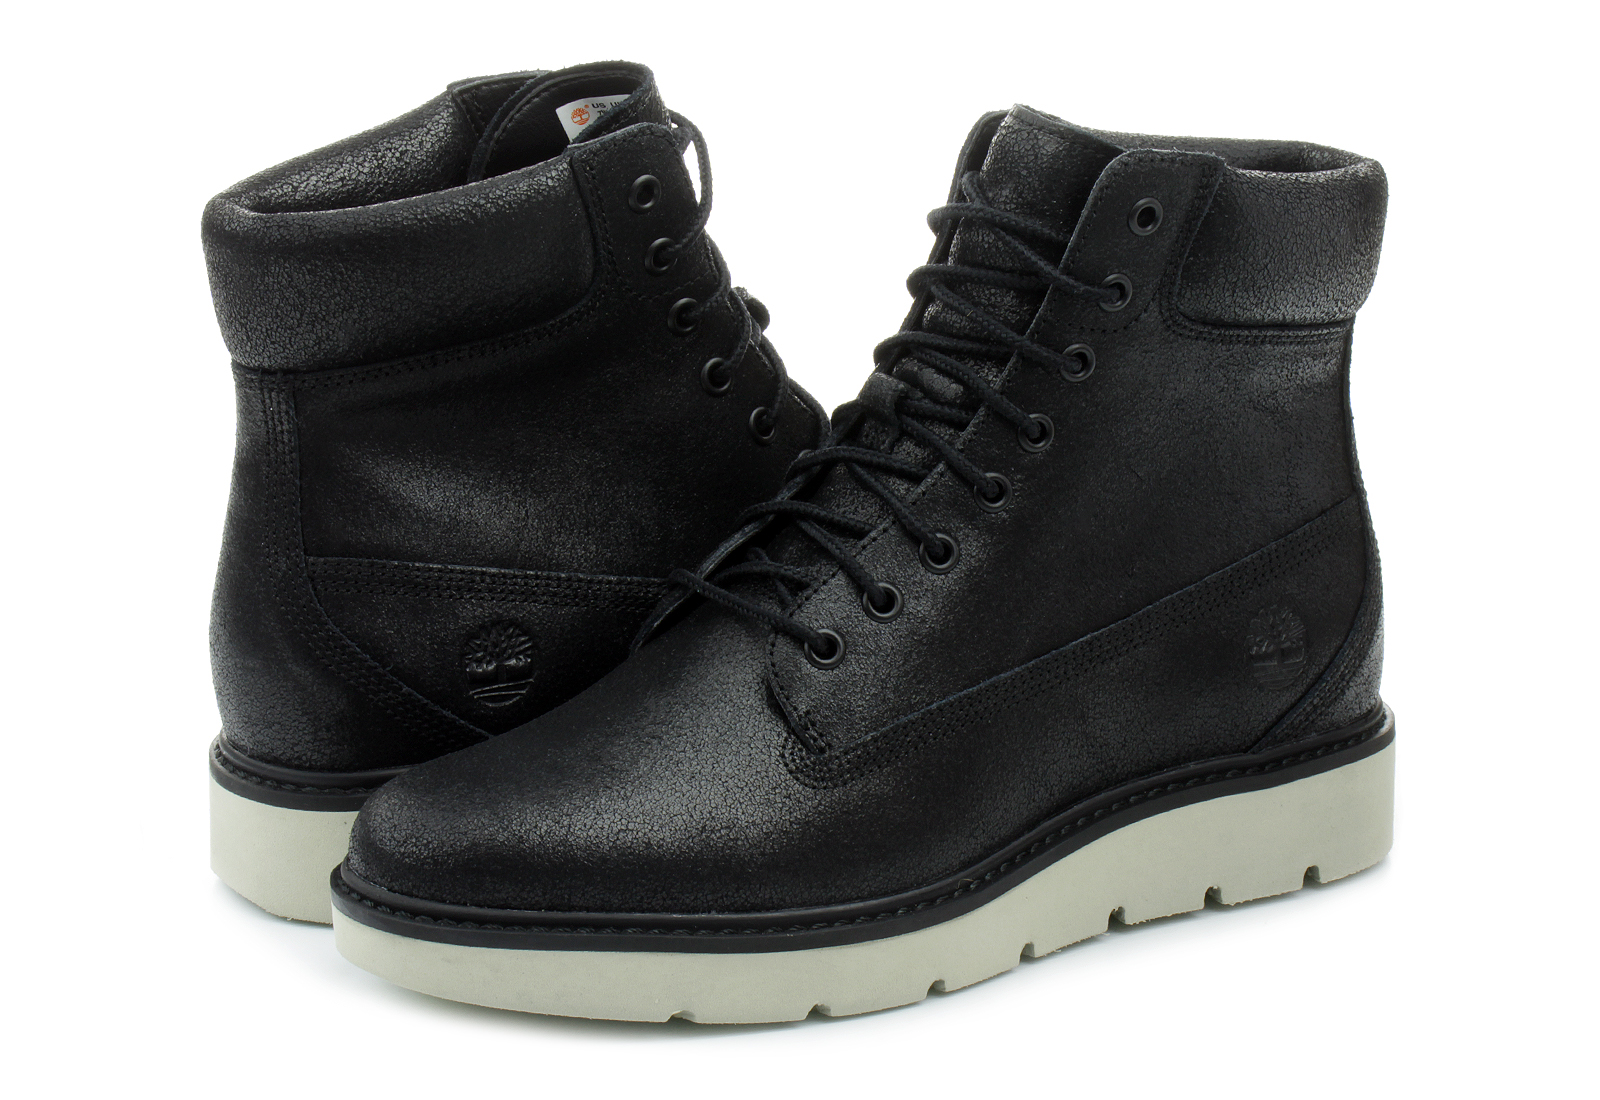 Timberland Topánky - Kenniston 6in Lace - a1iry-blk - Tenisky ... fa51e1f9be6